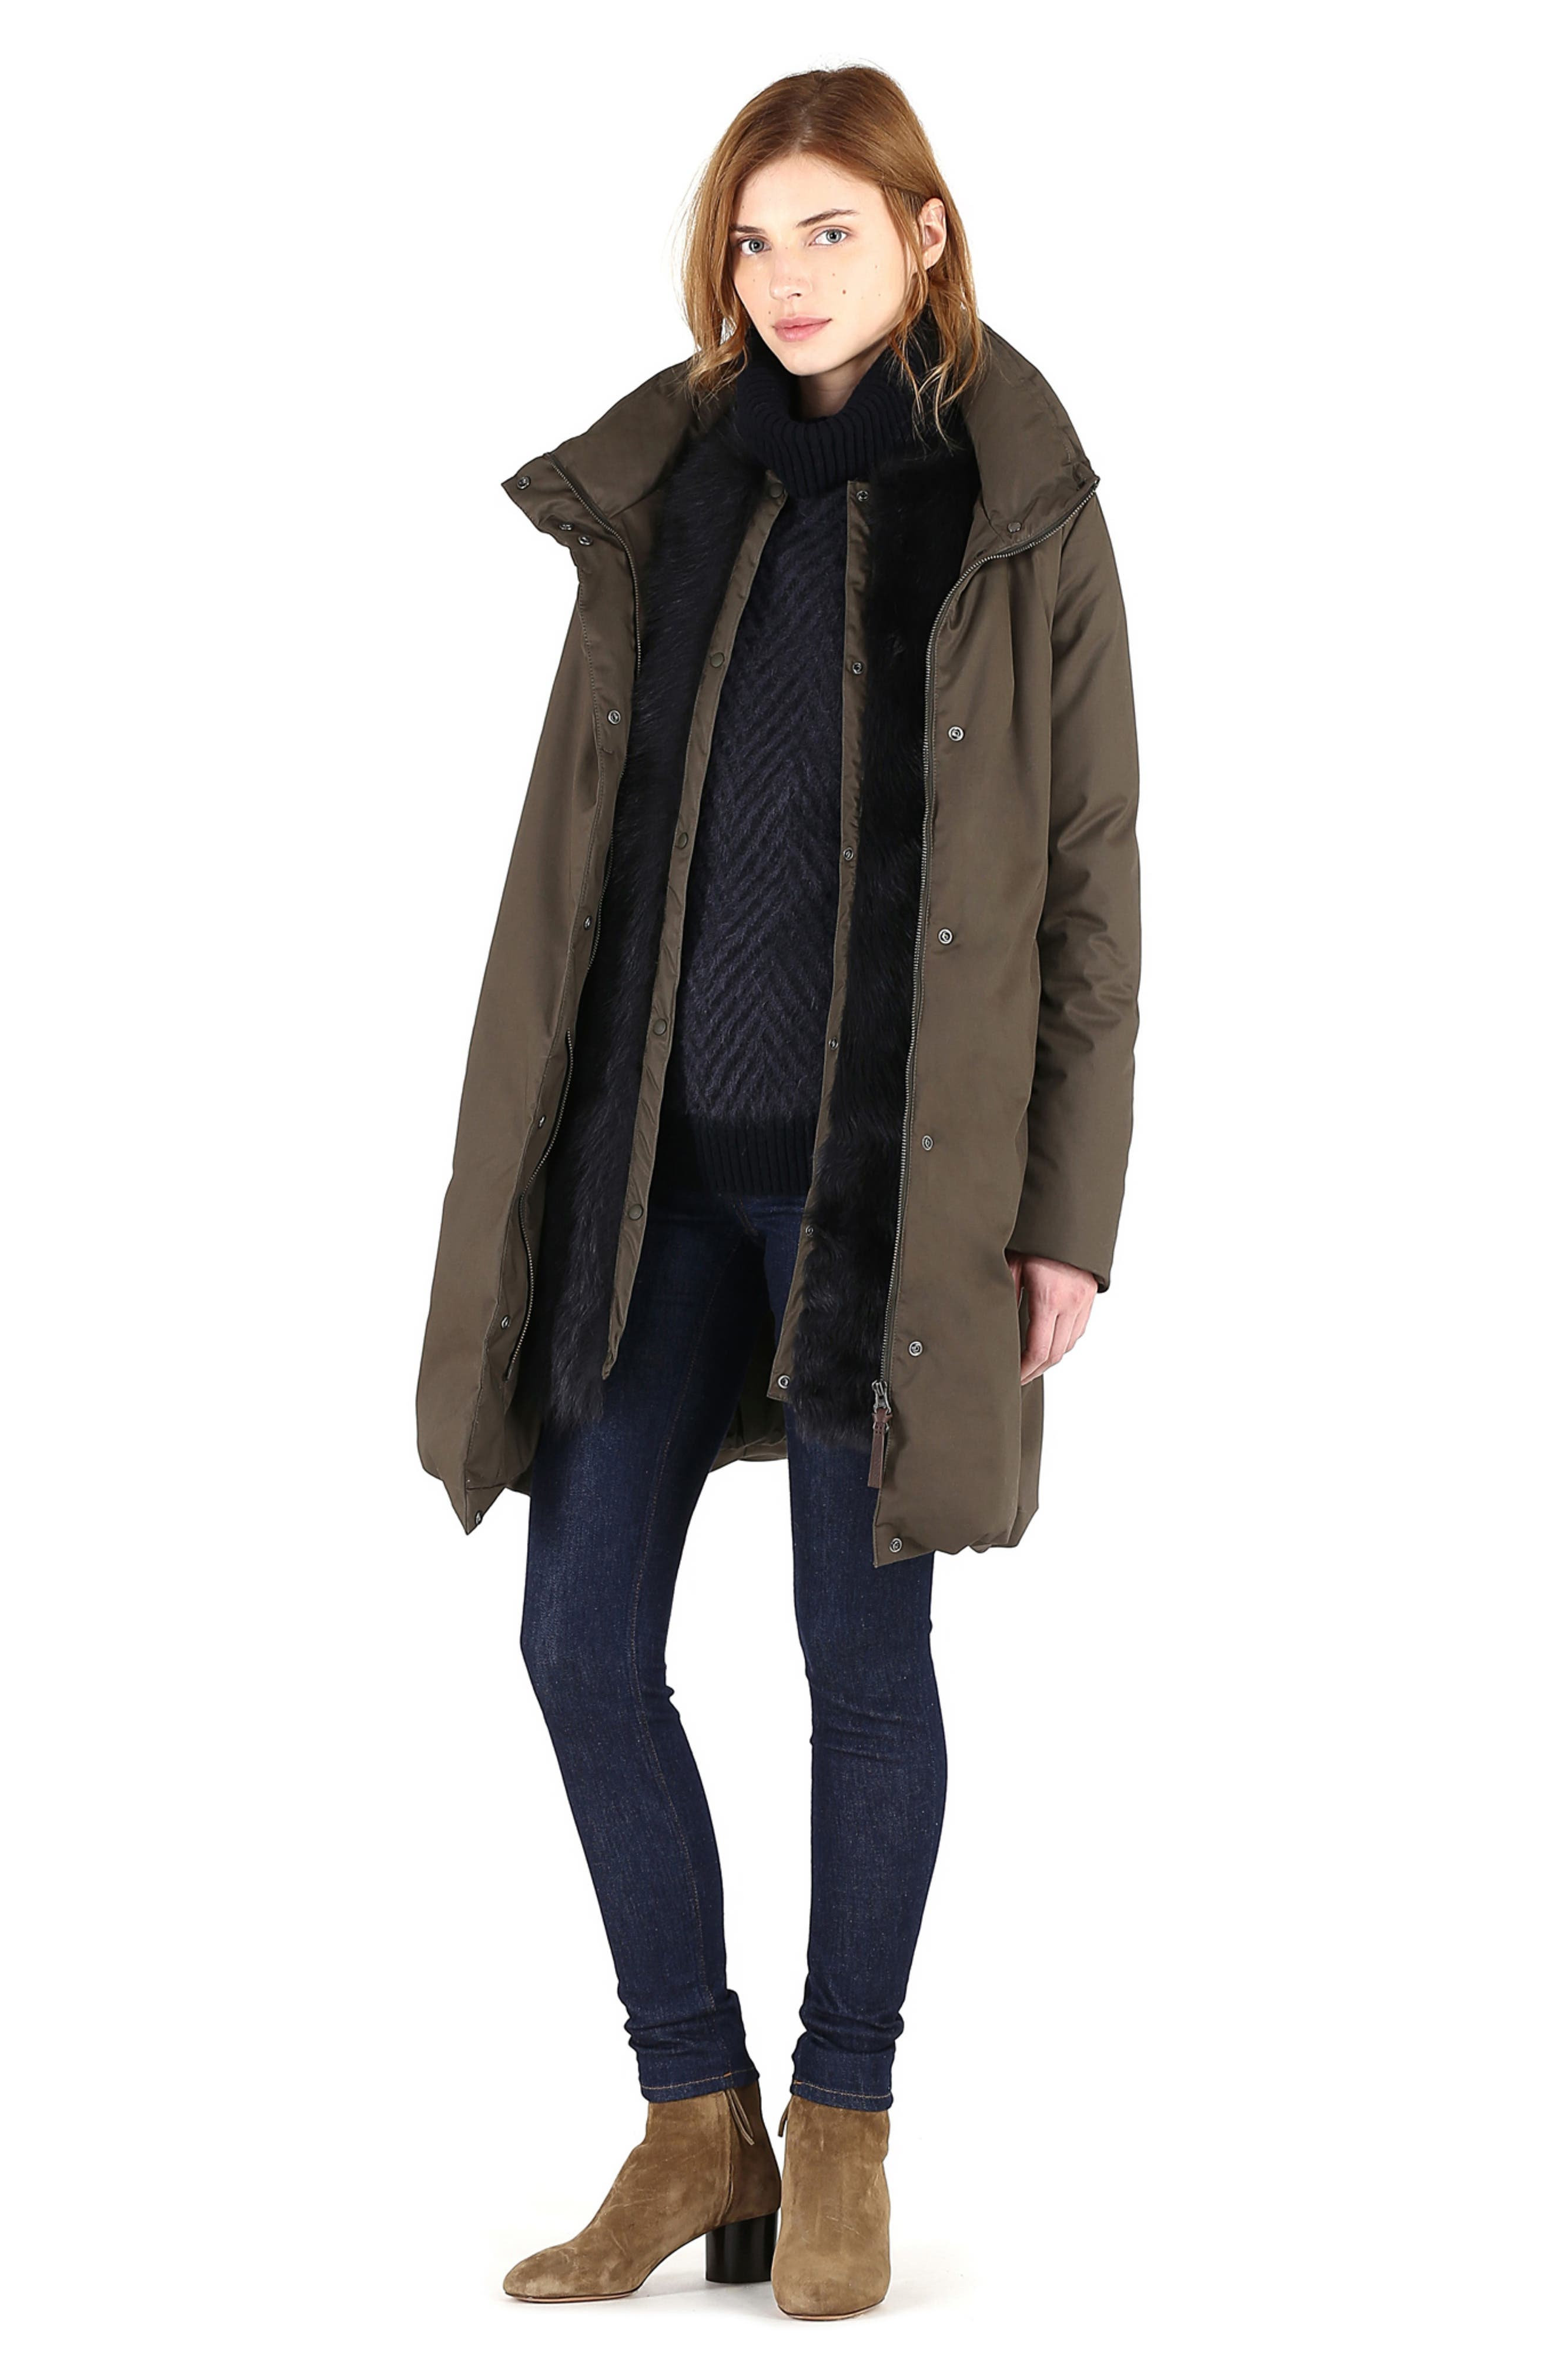 Cocoon Genuine Shearling Lined Down Coat,                             Alternate thumbnail 7, color,                             MILITARY OLIVE